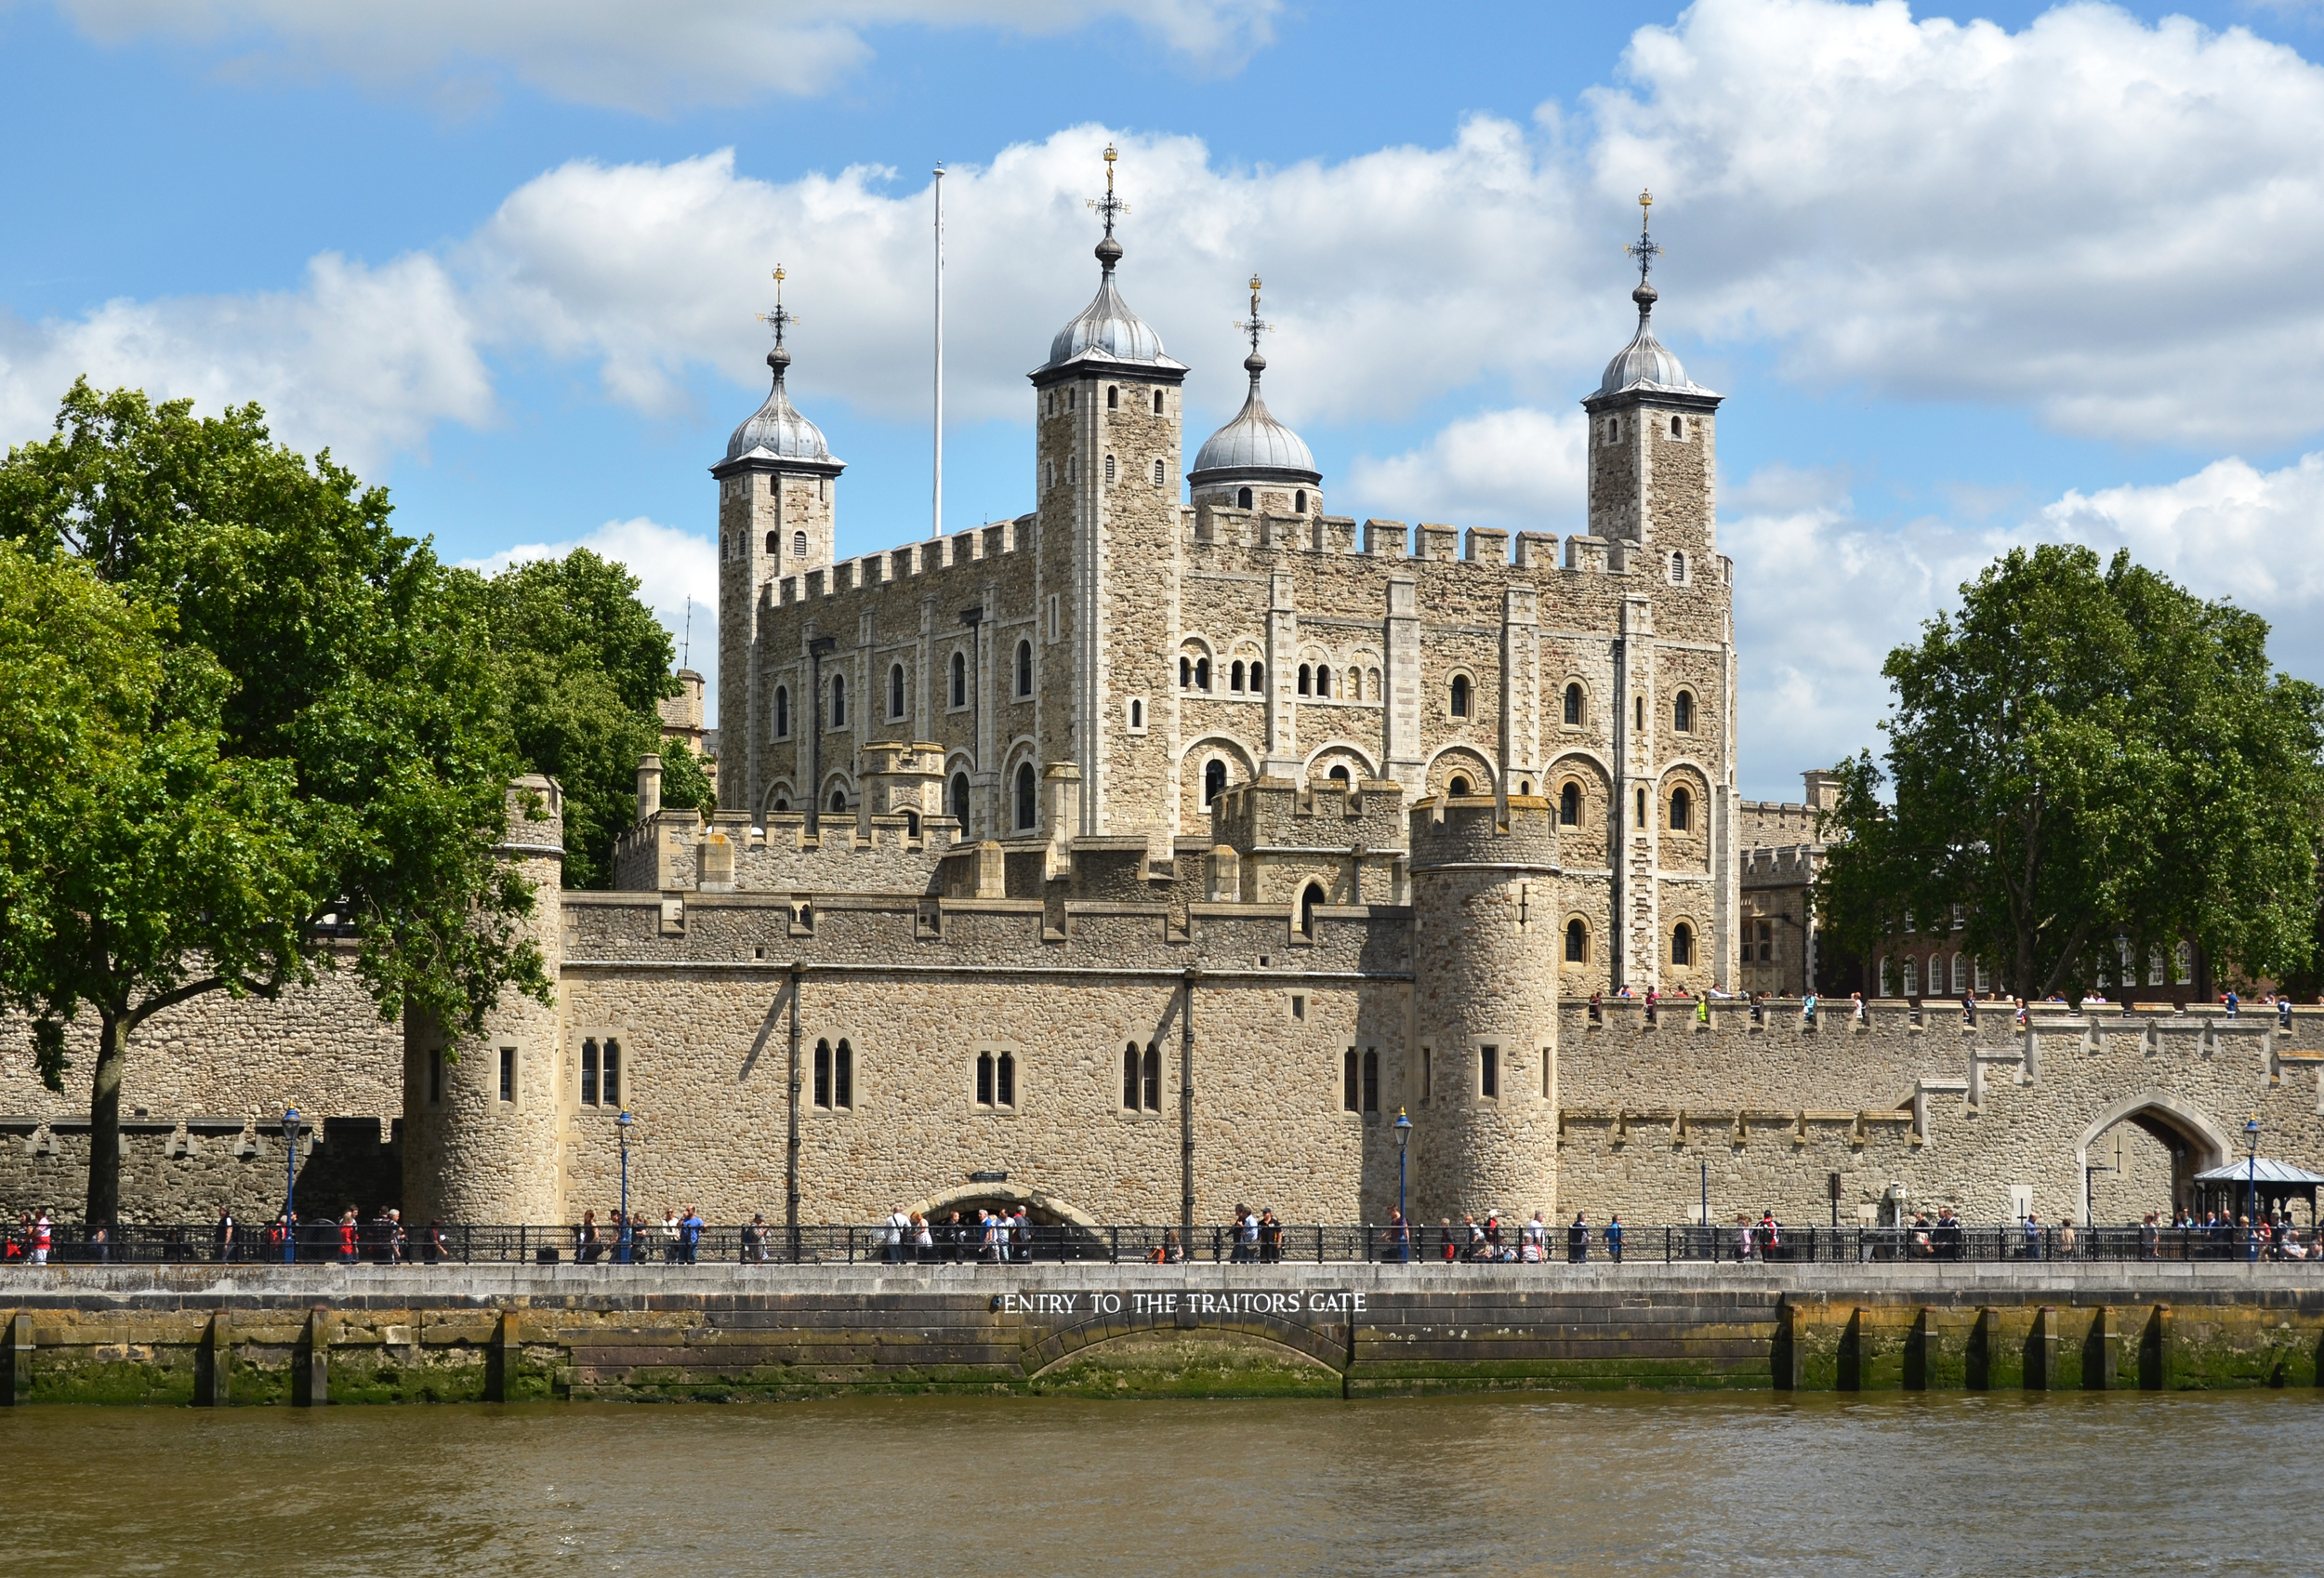 tower of london (Foto: Alexander Chaikin)